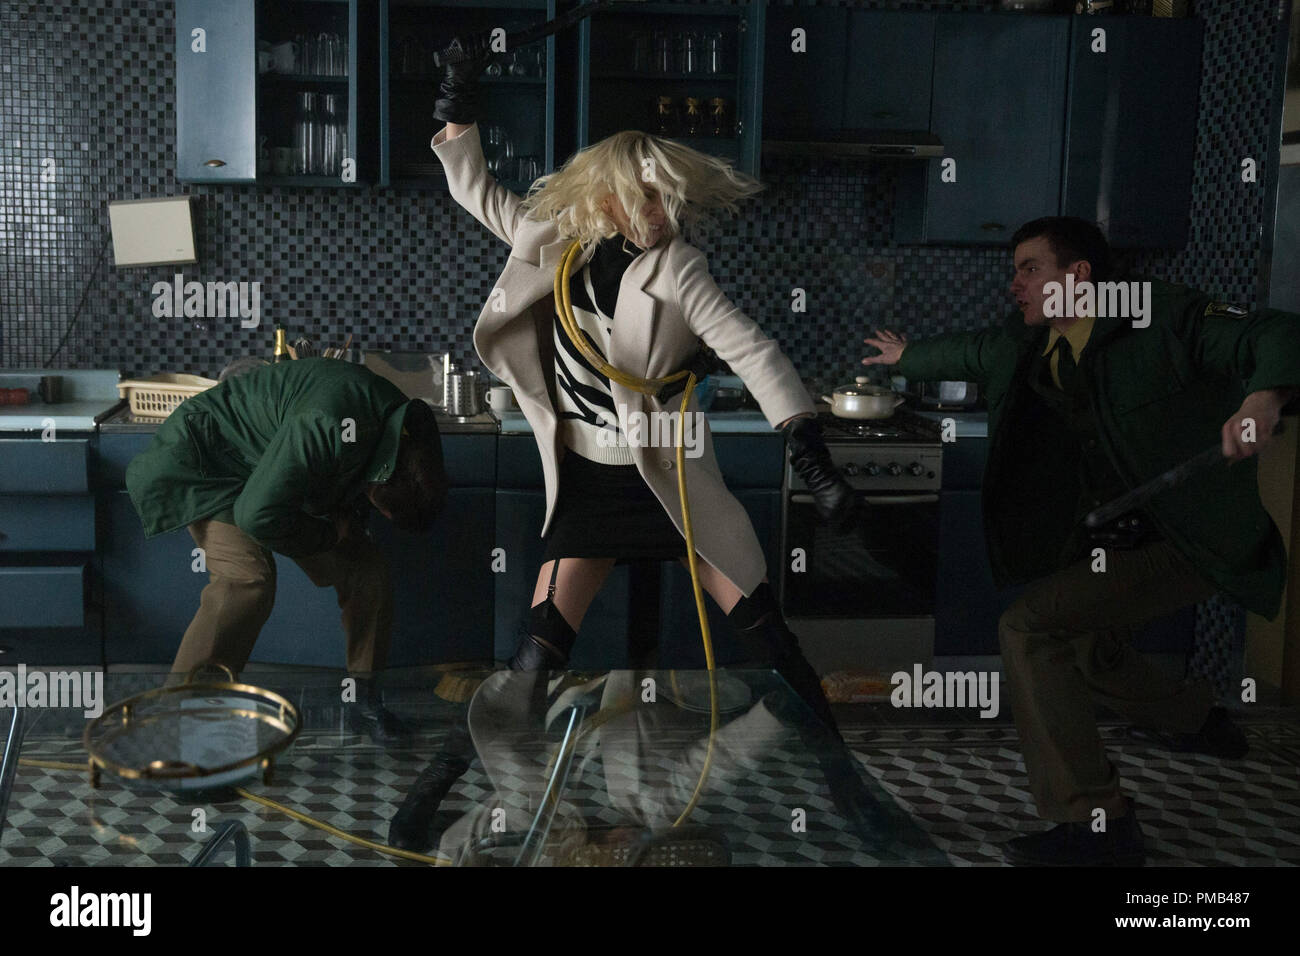 "CHARLIZE THERON explodes into summer in ""Atomic Blonde,"" a breakneck action-thriller that follows MI6's most lethal assassin through a ticking time bomb of a city simmering with revolution and double-crossing hives of traitors. (2017) Focus Features Stock Photo"